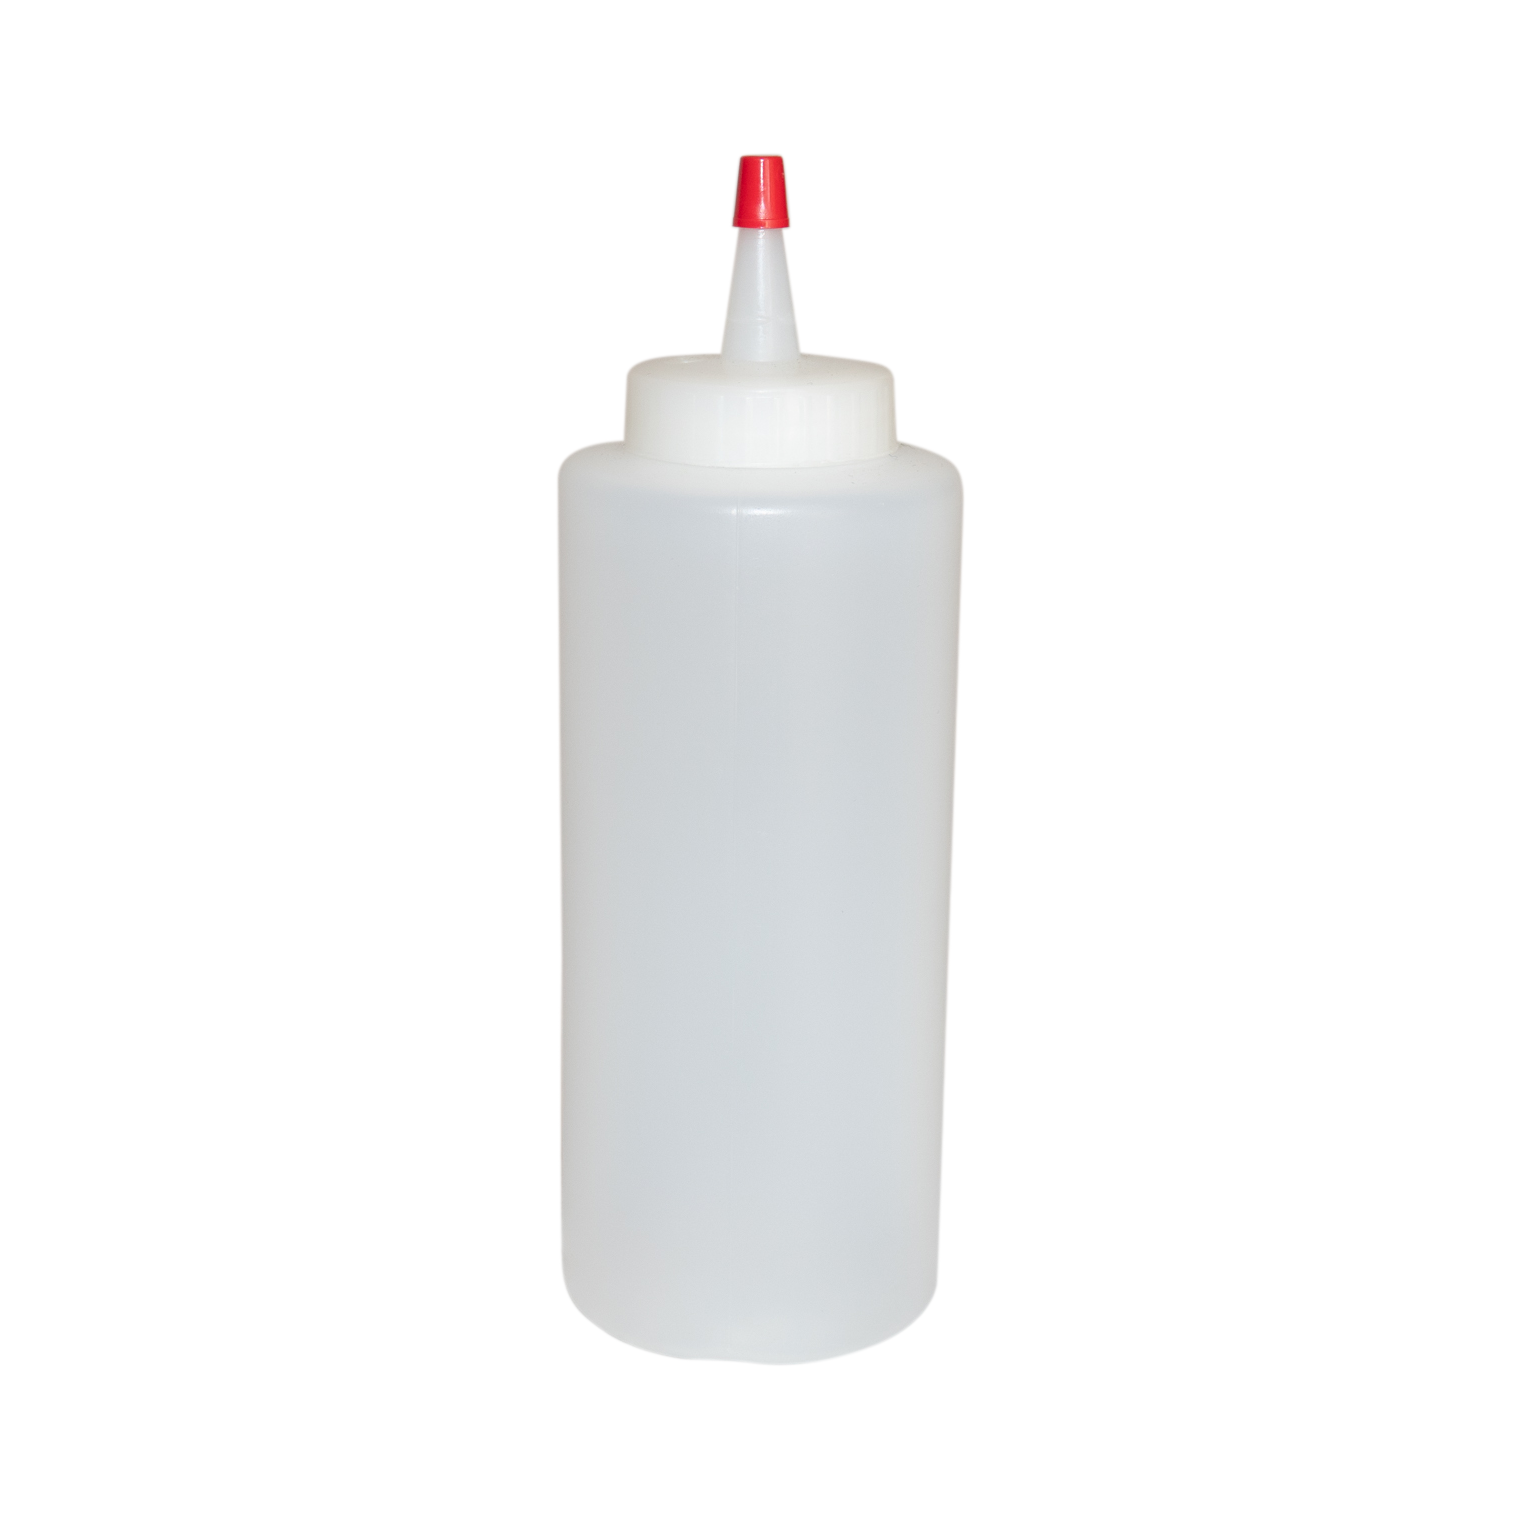 Plastic Detailer Squirt Bottle For Wax and Polishes